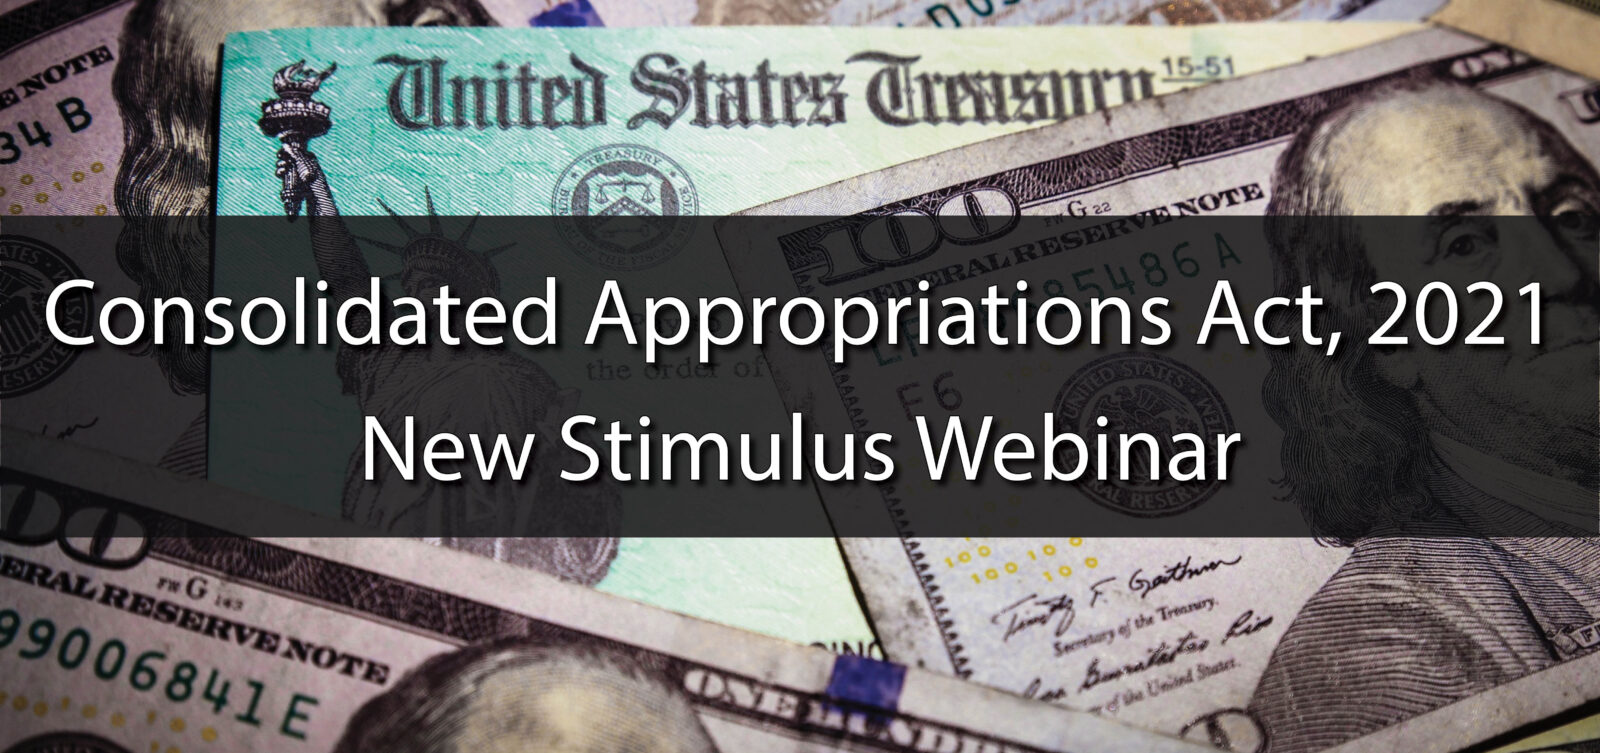 consolidated appropriations act webinar